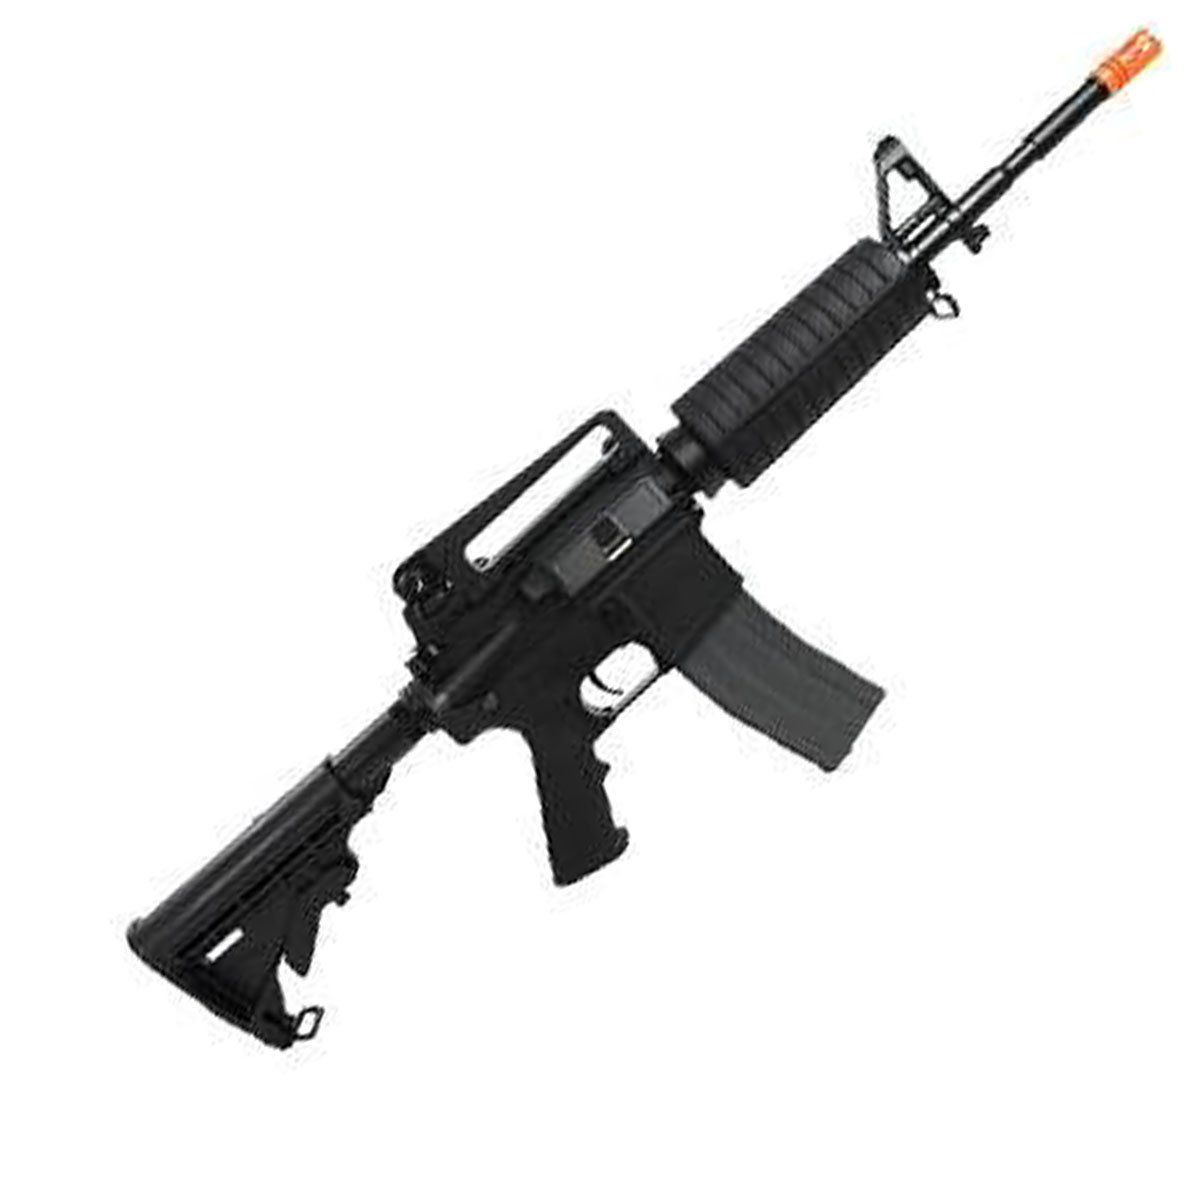 Rifle Airsoft G&G M4 GR16 Blowback Elétrico 6mm